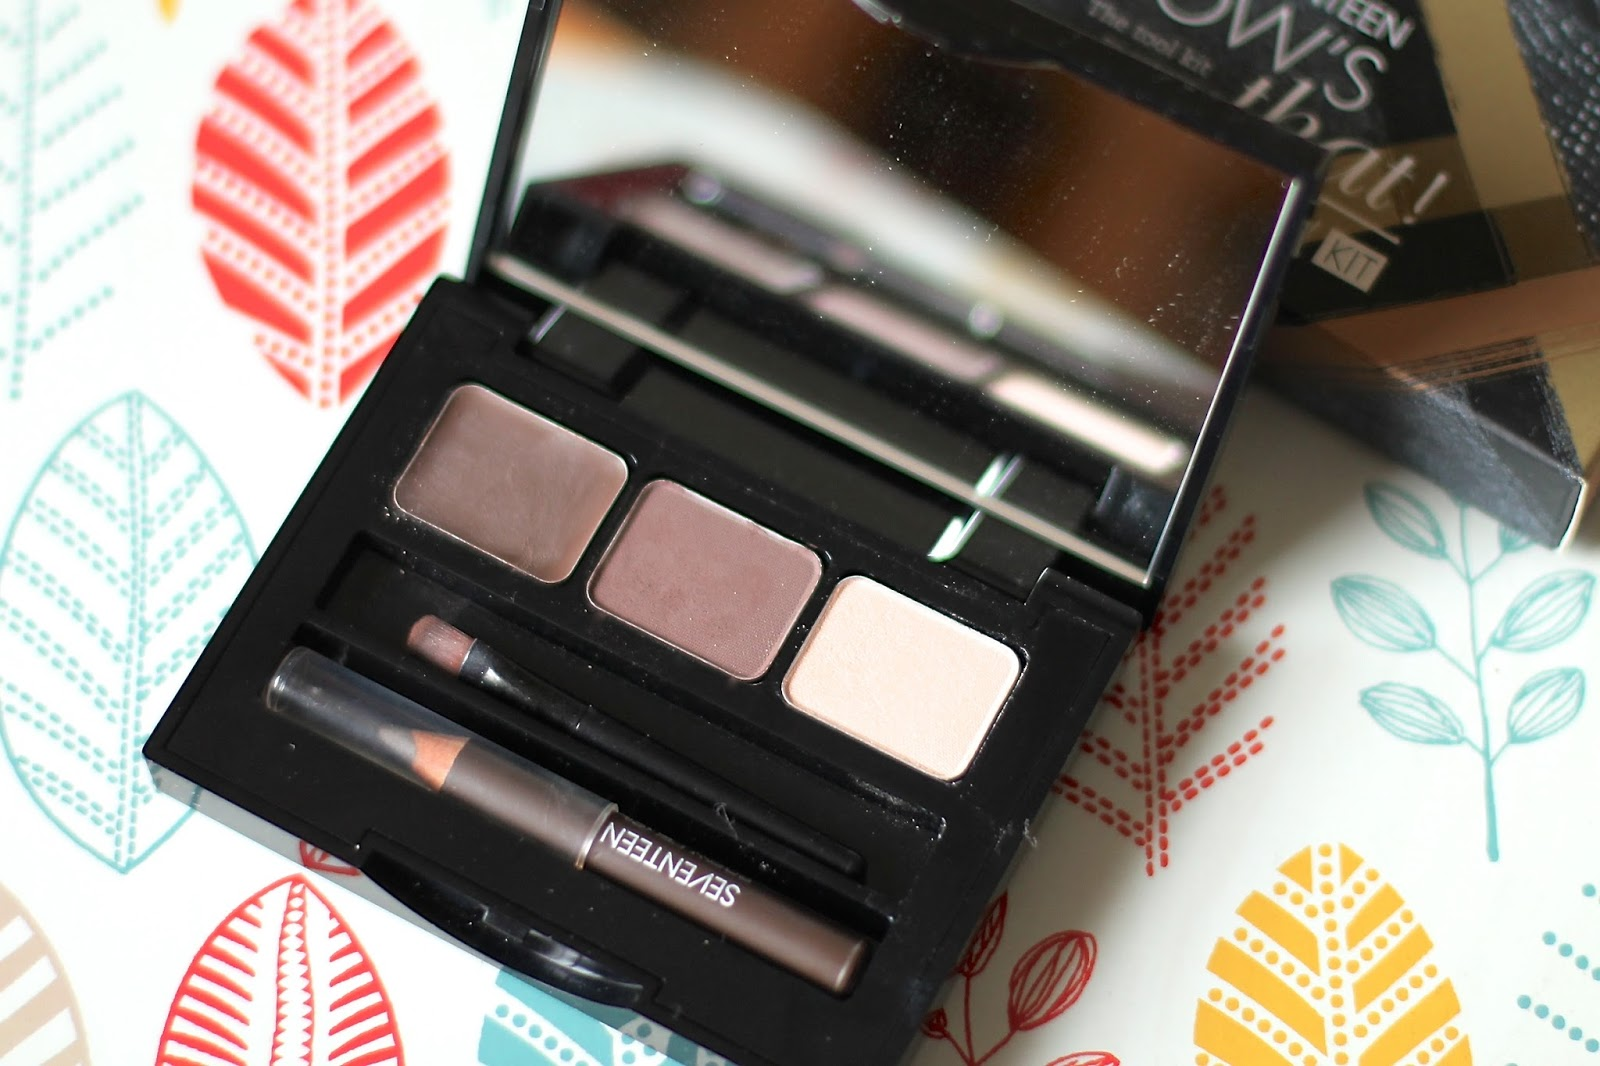 Boots Seventeen Brow's That! Brow Kit review